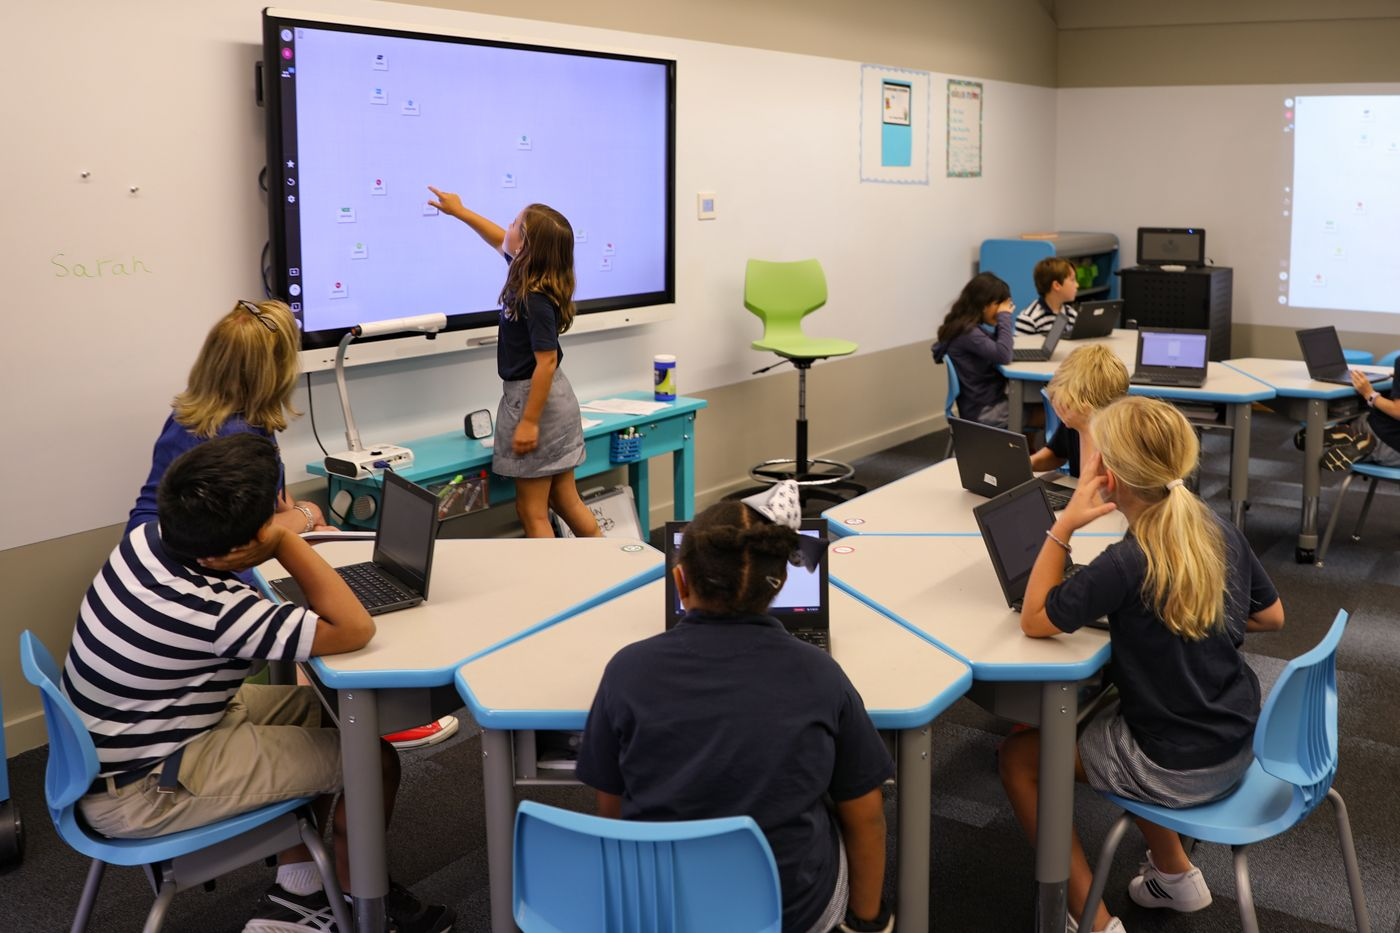 i2 Classrooms support a range of innovative, research-based technologies that bolster teaching and learning.